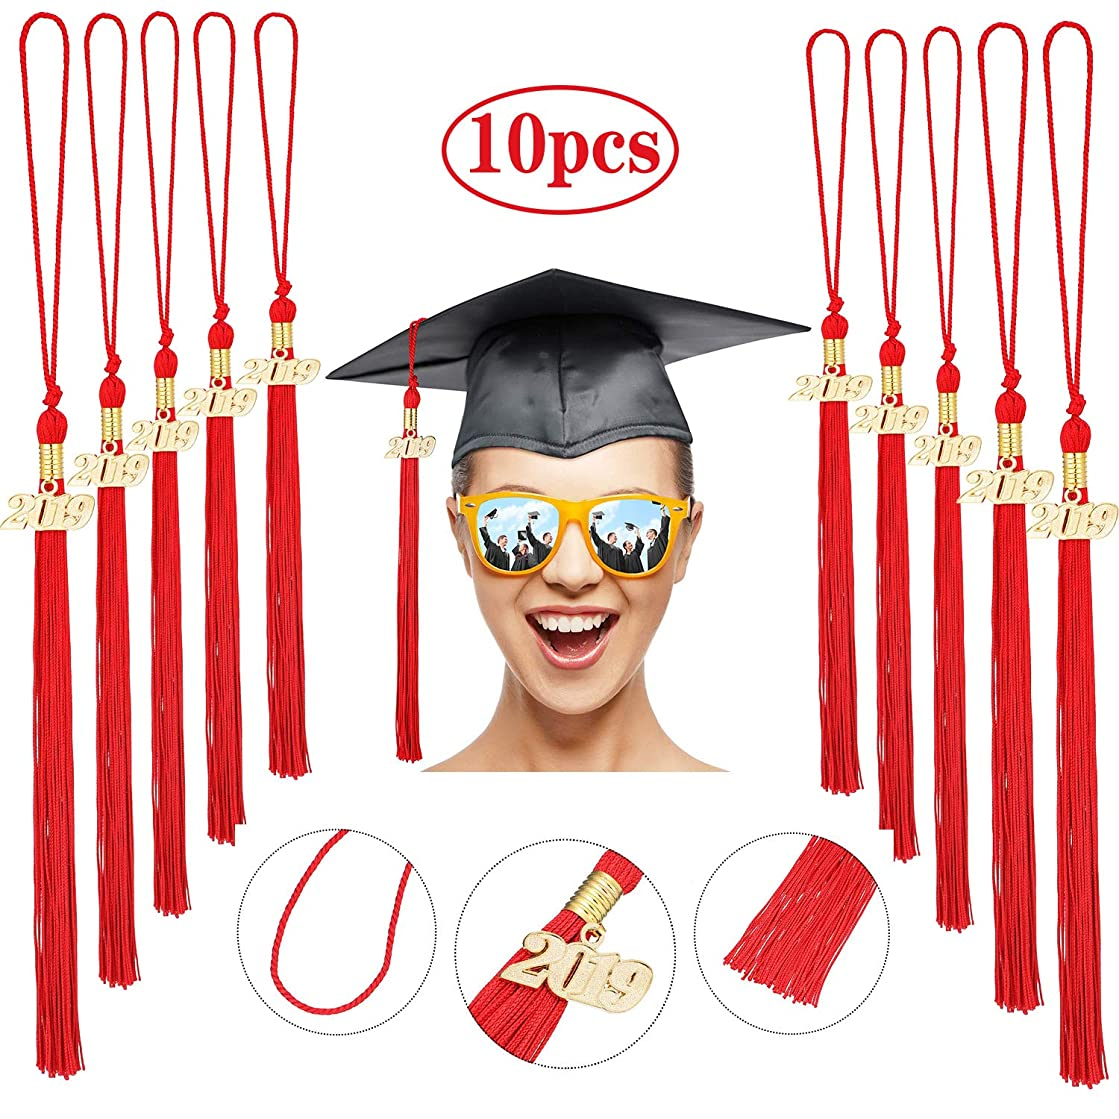 10 Pieces Graduation Tassel Graduation Cap Tassel with 2019 Year Charm for Graduation Parties, 9.4 Inches (Red)